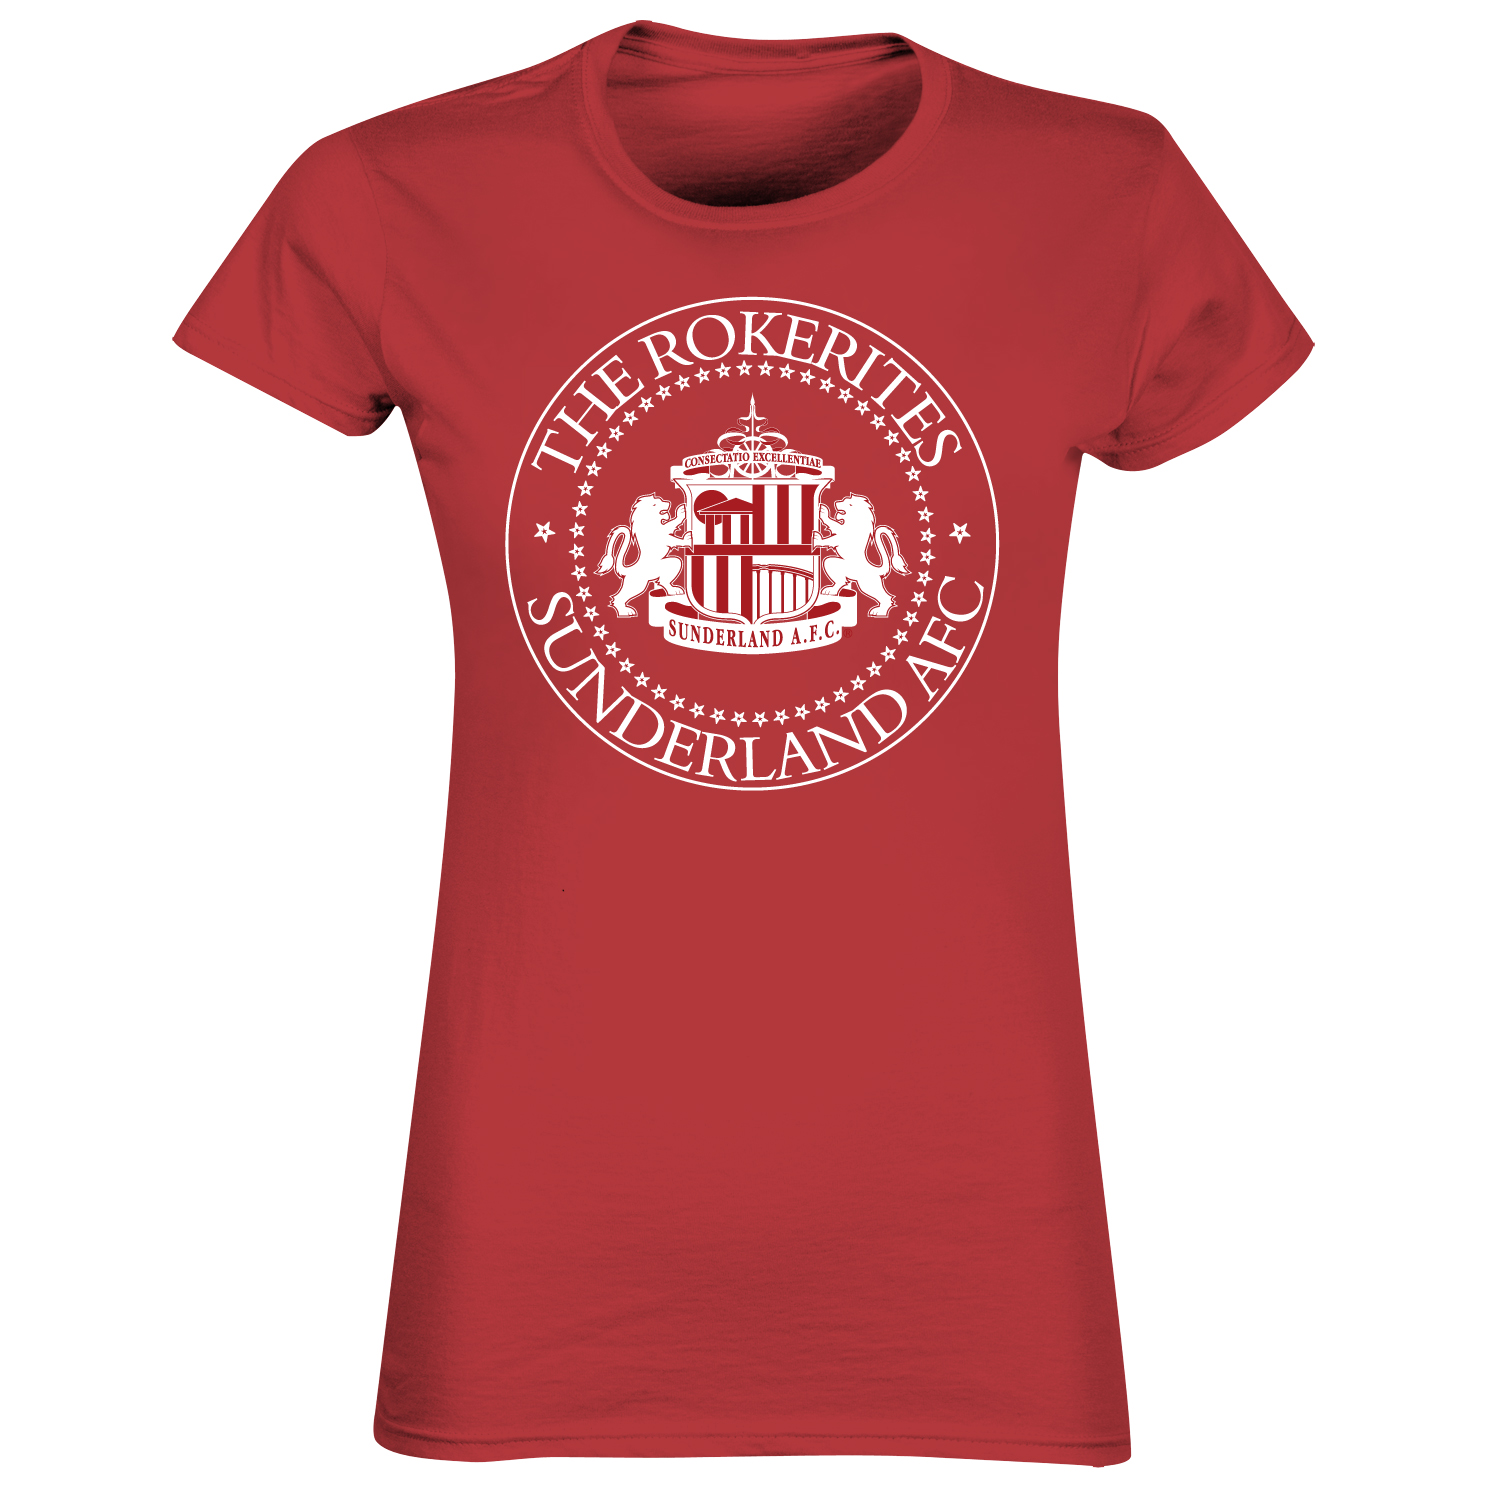 Sunderland 2 for 20 Rokerites T-Shirt - Red - Womens